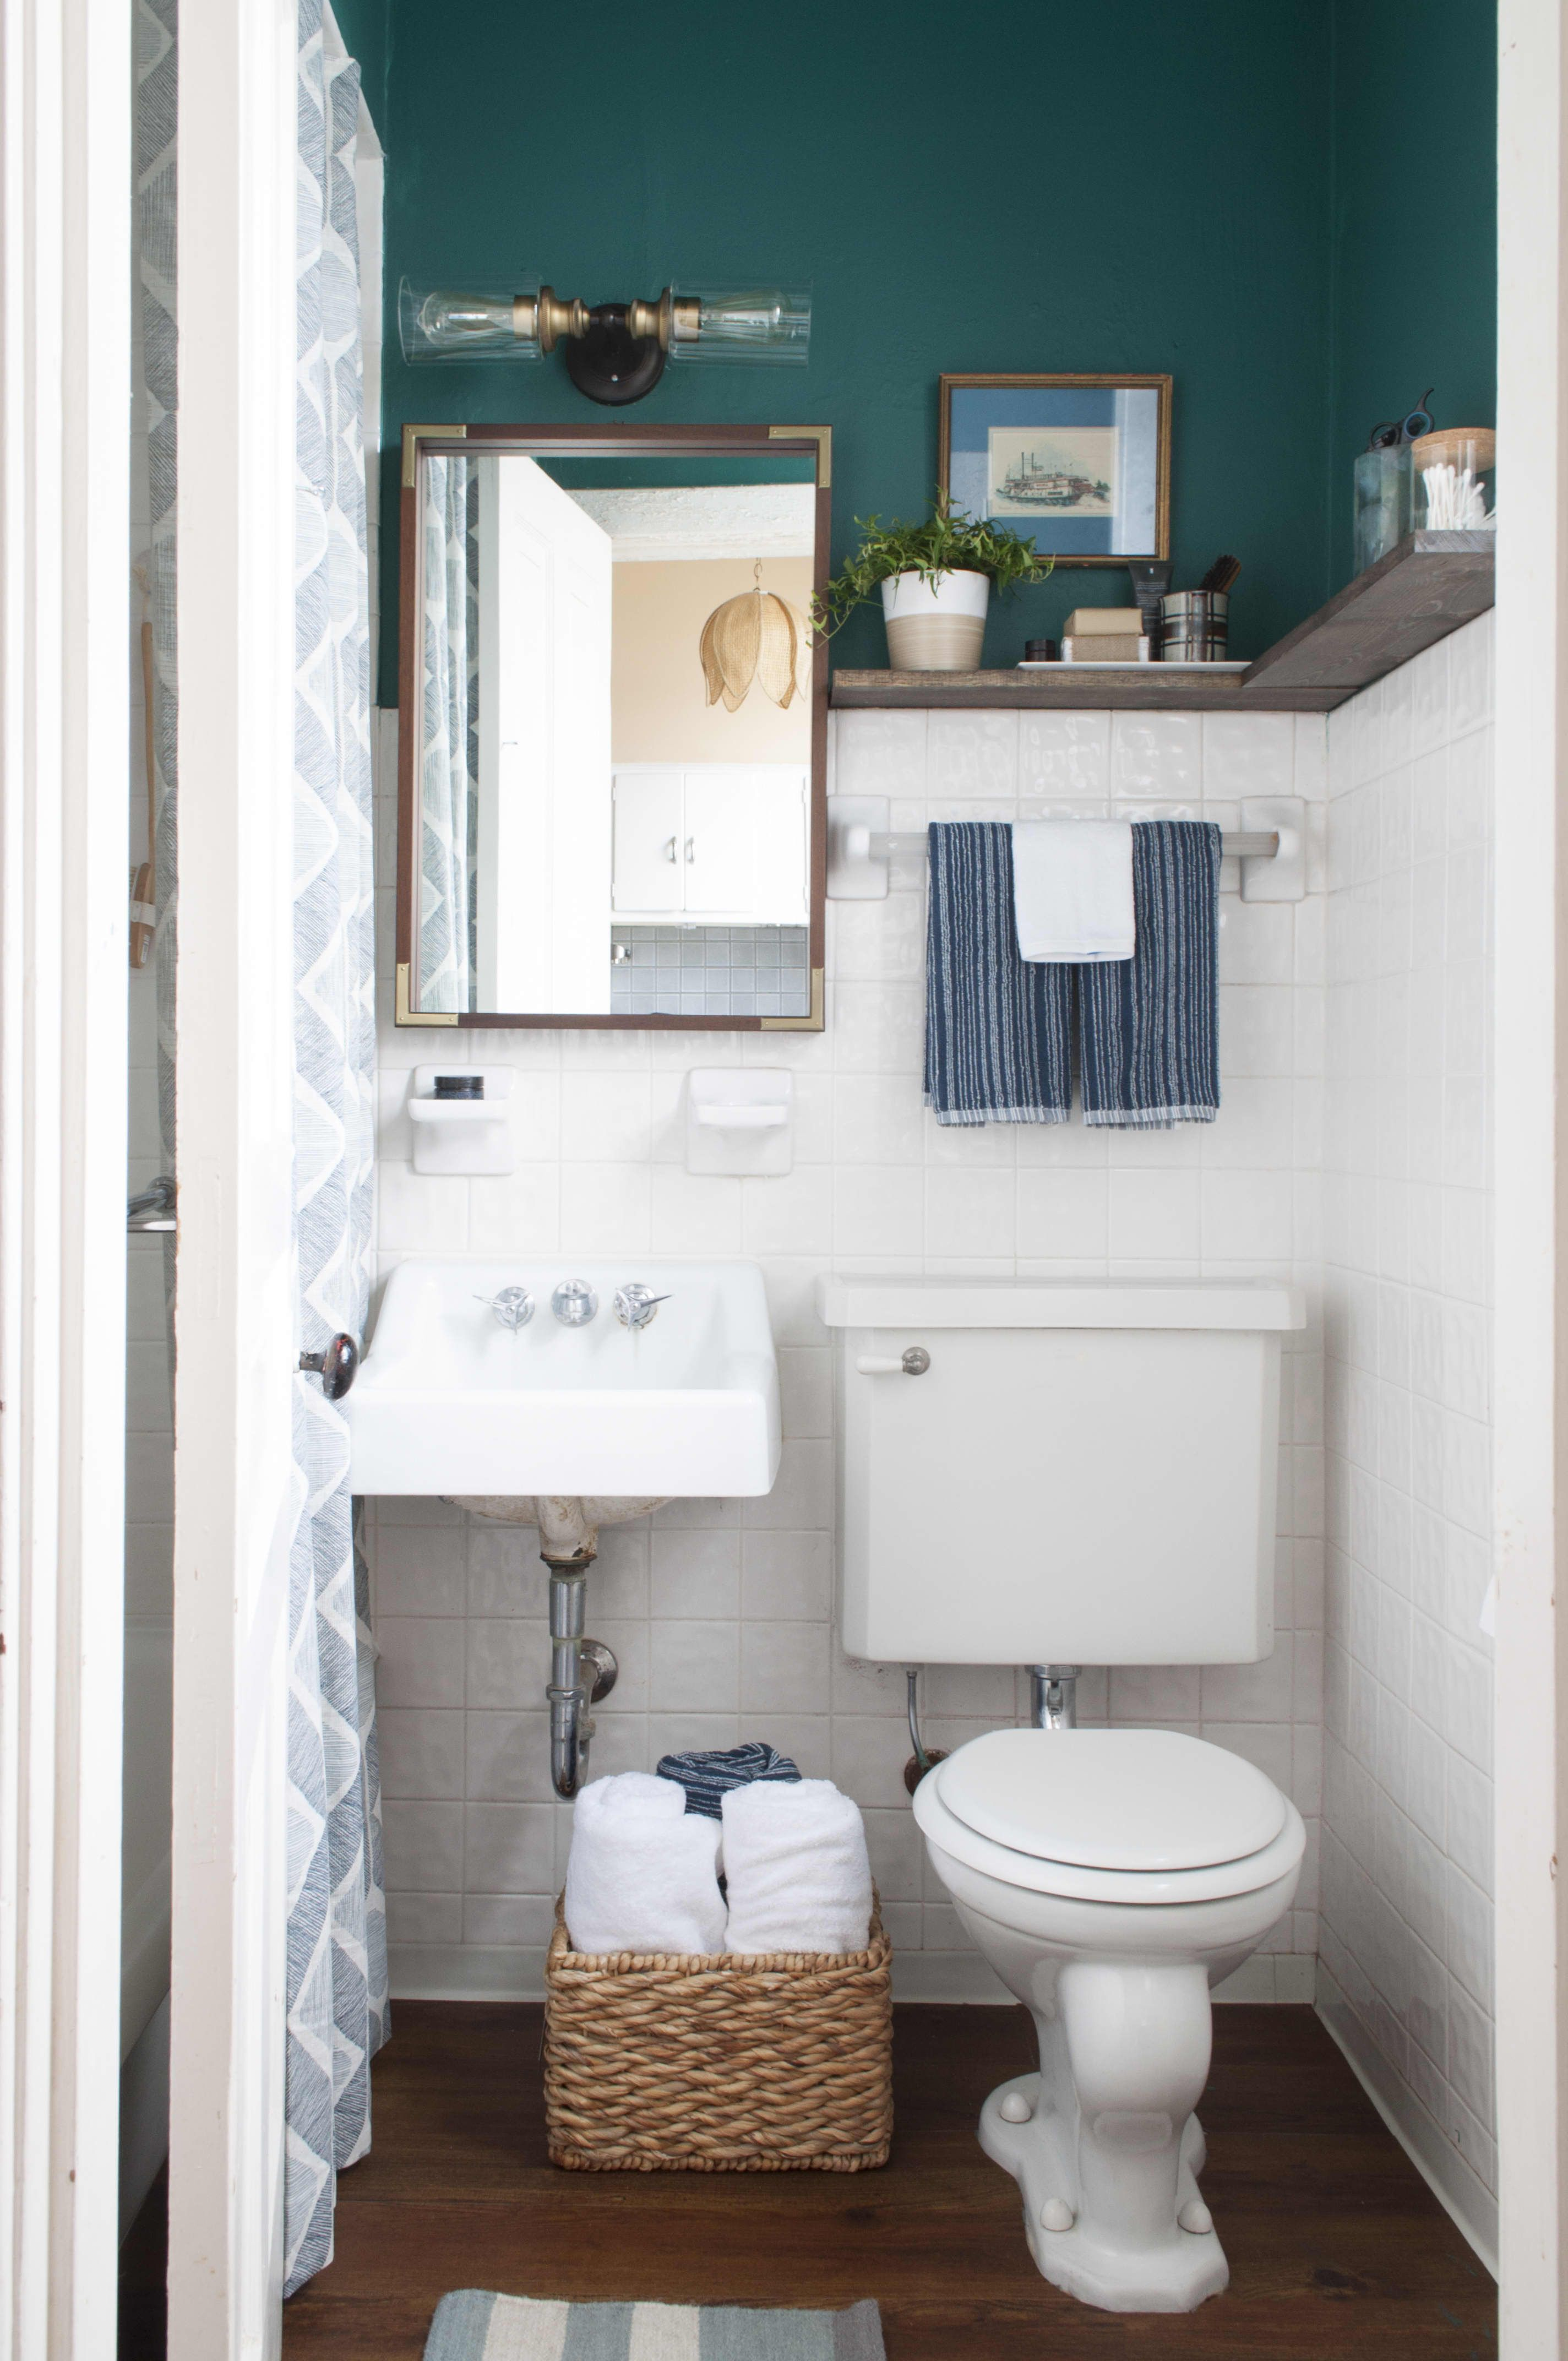 8 Stylish Solutions For Your Totally Icky Rental Bathroom Apartment Decorating Rental Rental Bathroom Makeover Bathroom Decor Apartment